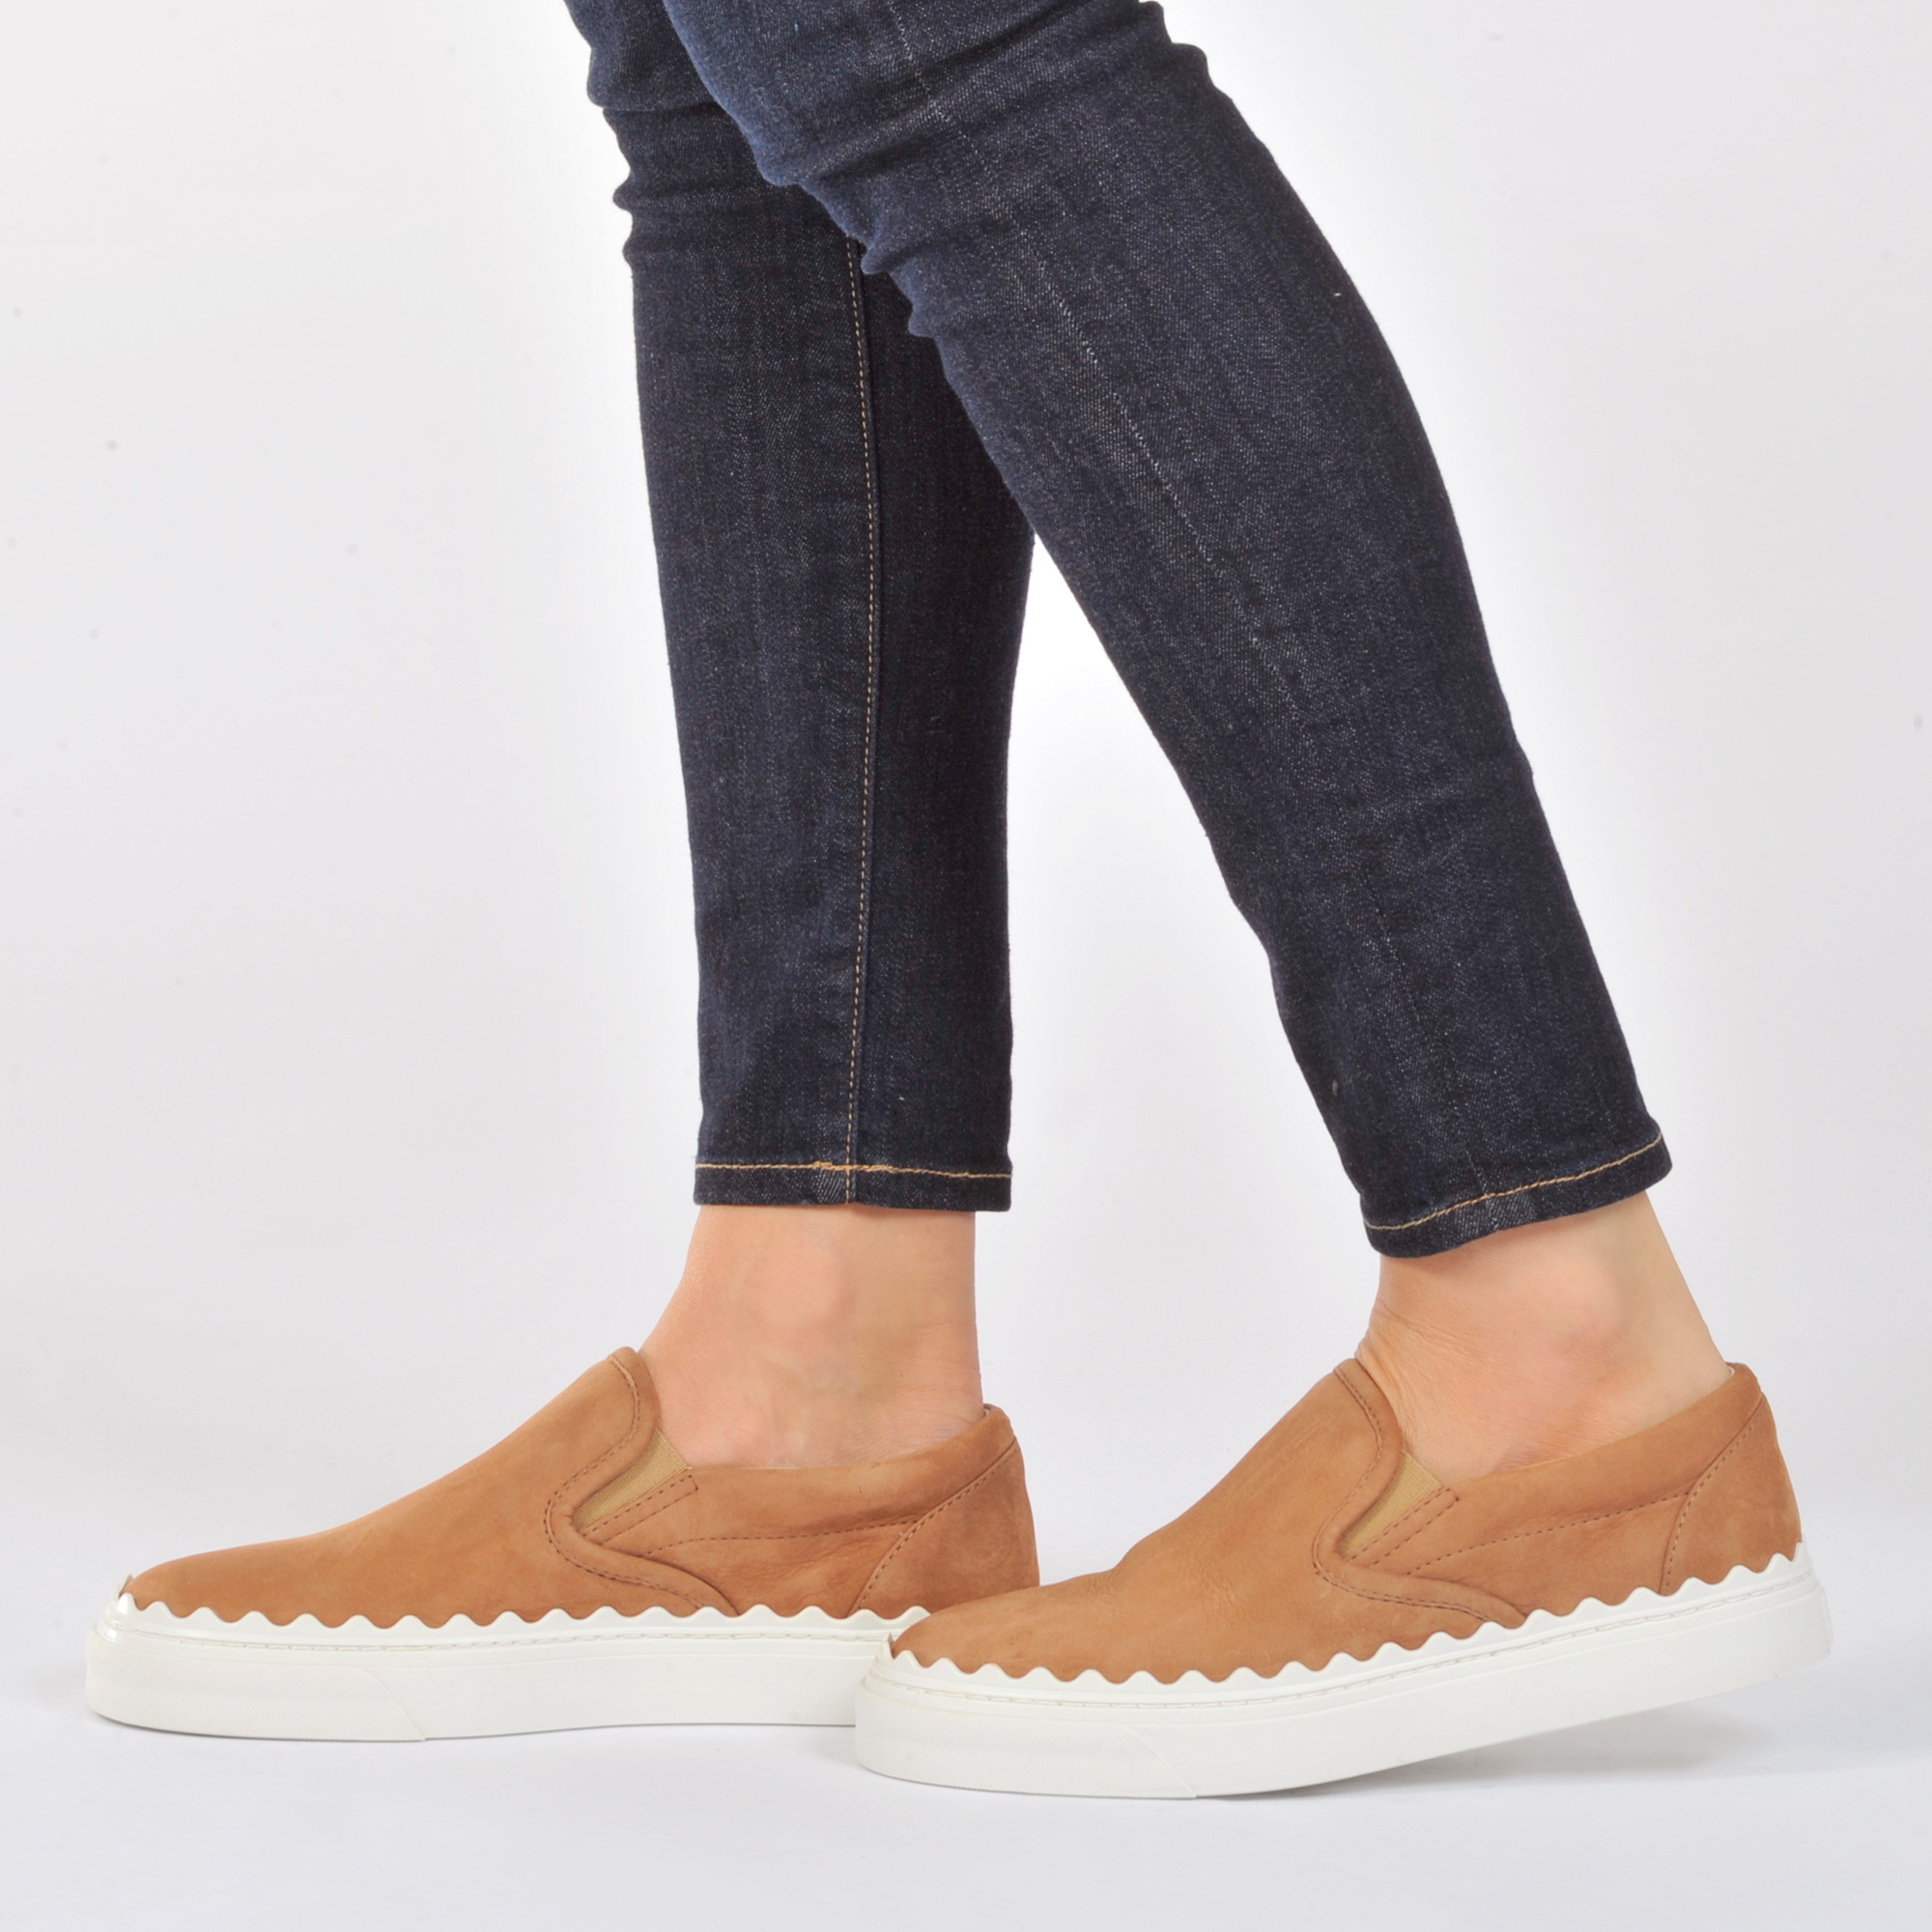 Chloé Ivy Scallop Slip-On Sneakers outlet best wholesale buy cheap low price fee shipping outlet latest collections supply huge surprise UuXcXLIUj